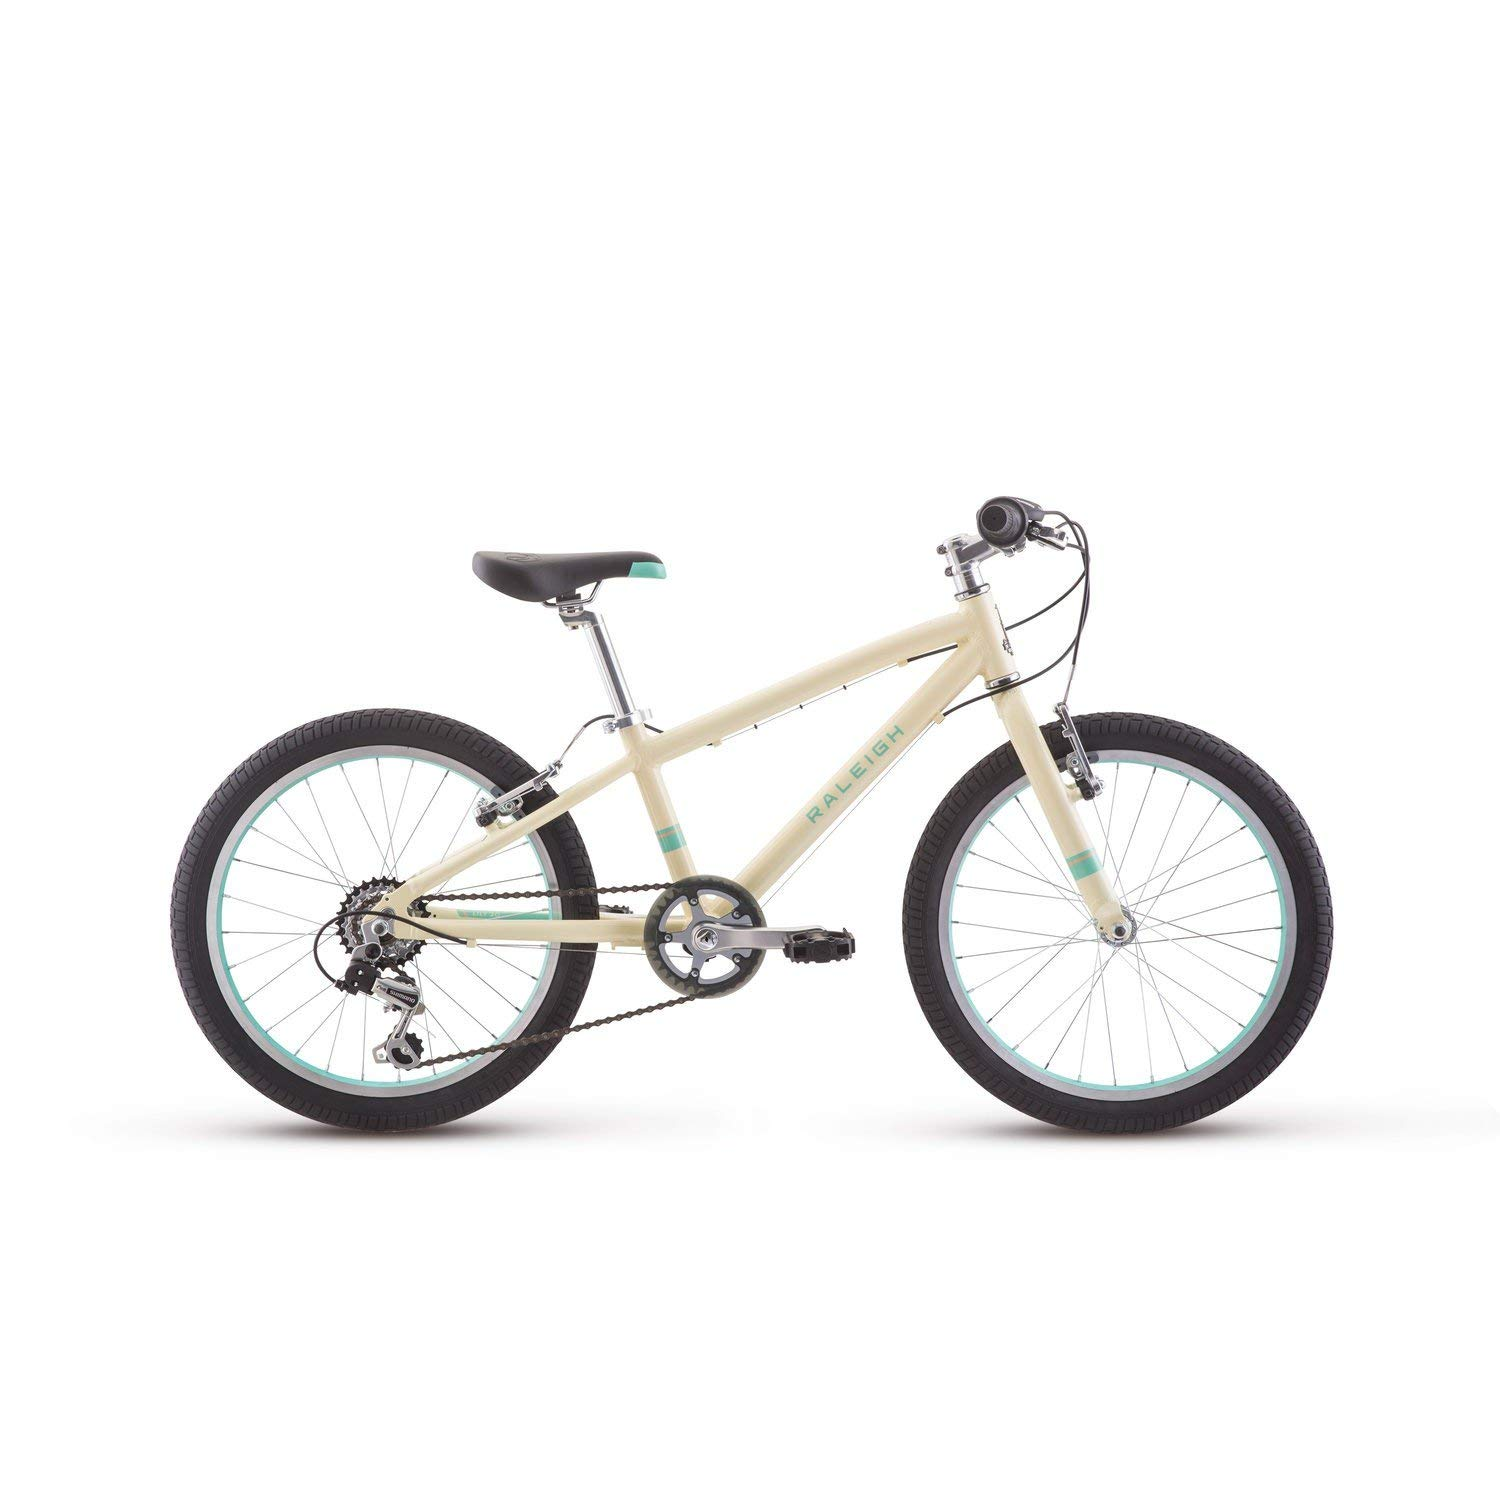 RALEIGH Bikes Lily 20 Kids Mountain Bike for Girls Youth 4-9 Years Old, White